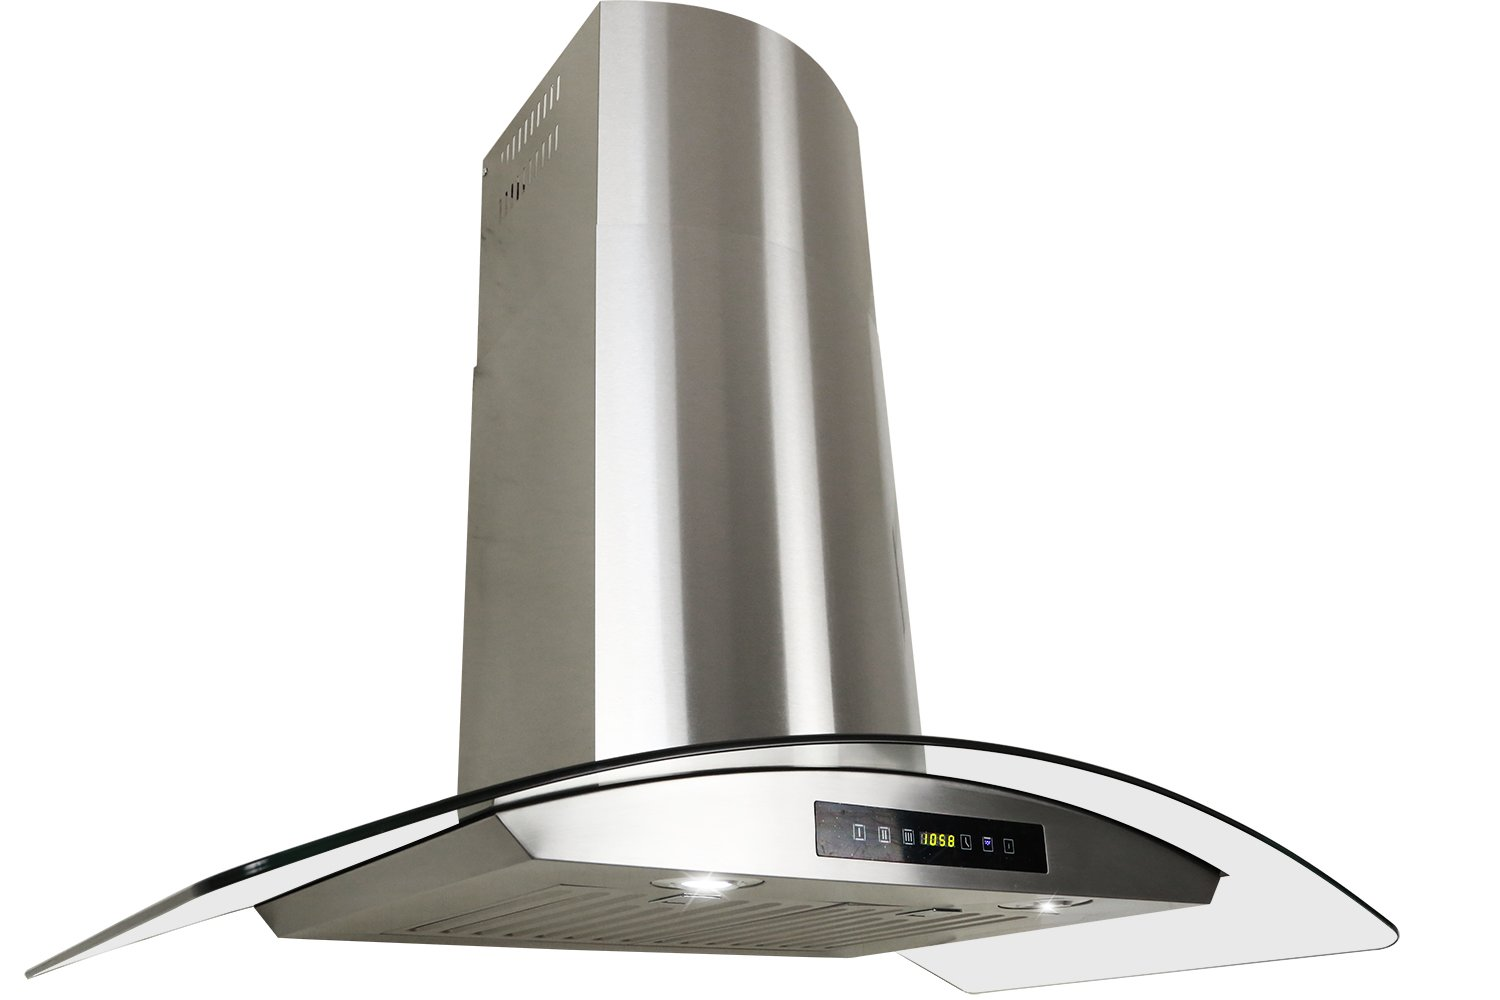 Golden Vantage Stainless Steel 30 Euro Style Wall Mount Range Hood LED TOUCH SCREEN W//Baffle Filter GV-H703C-B30